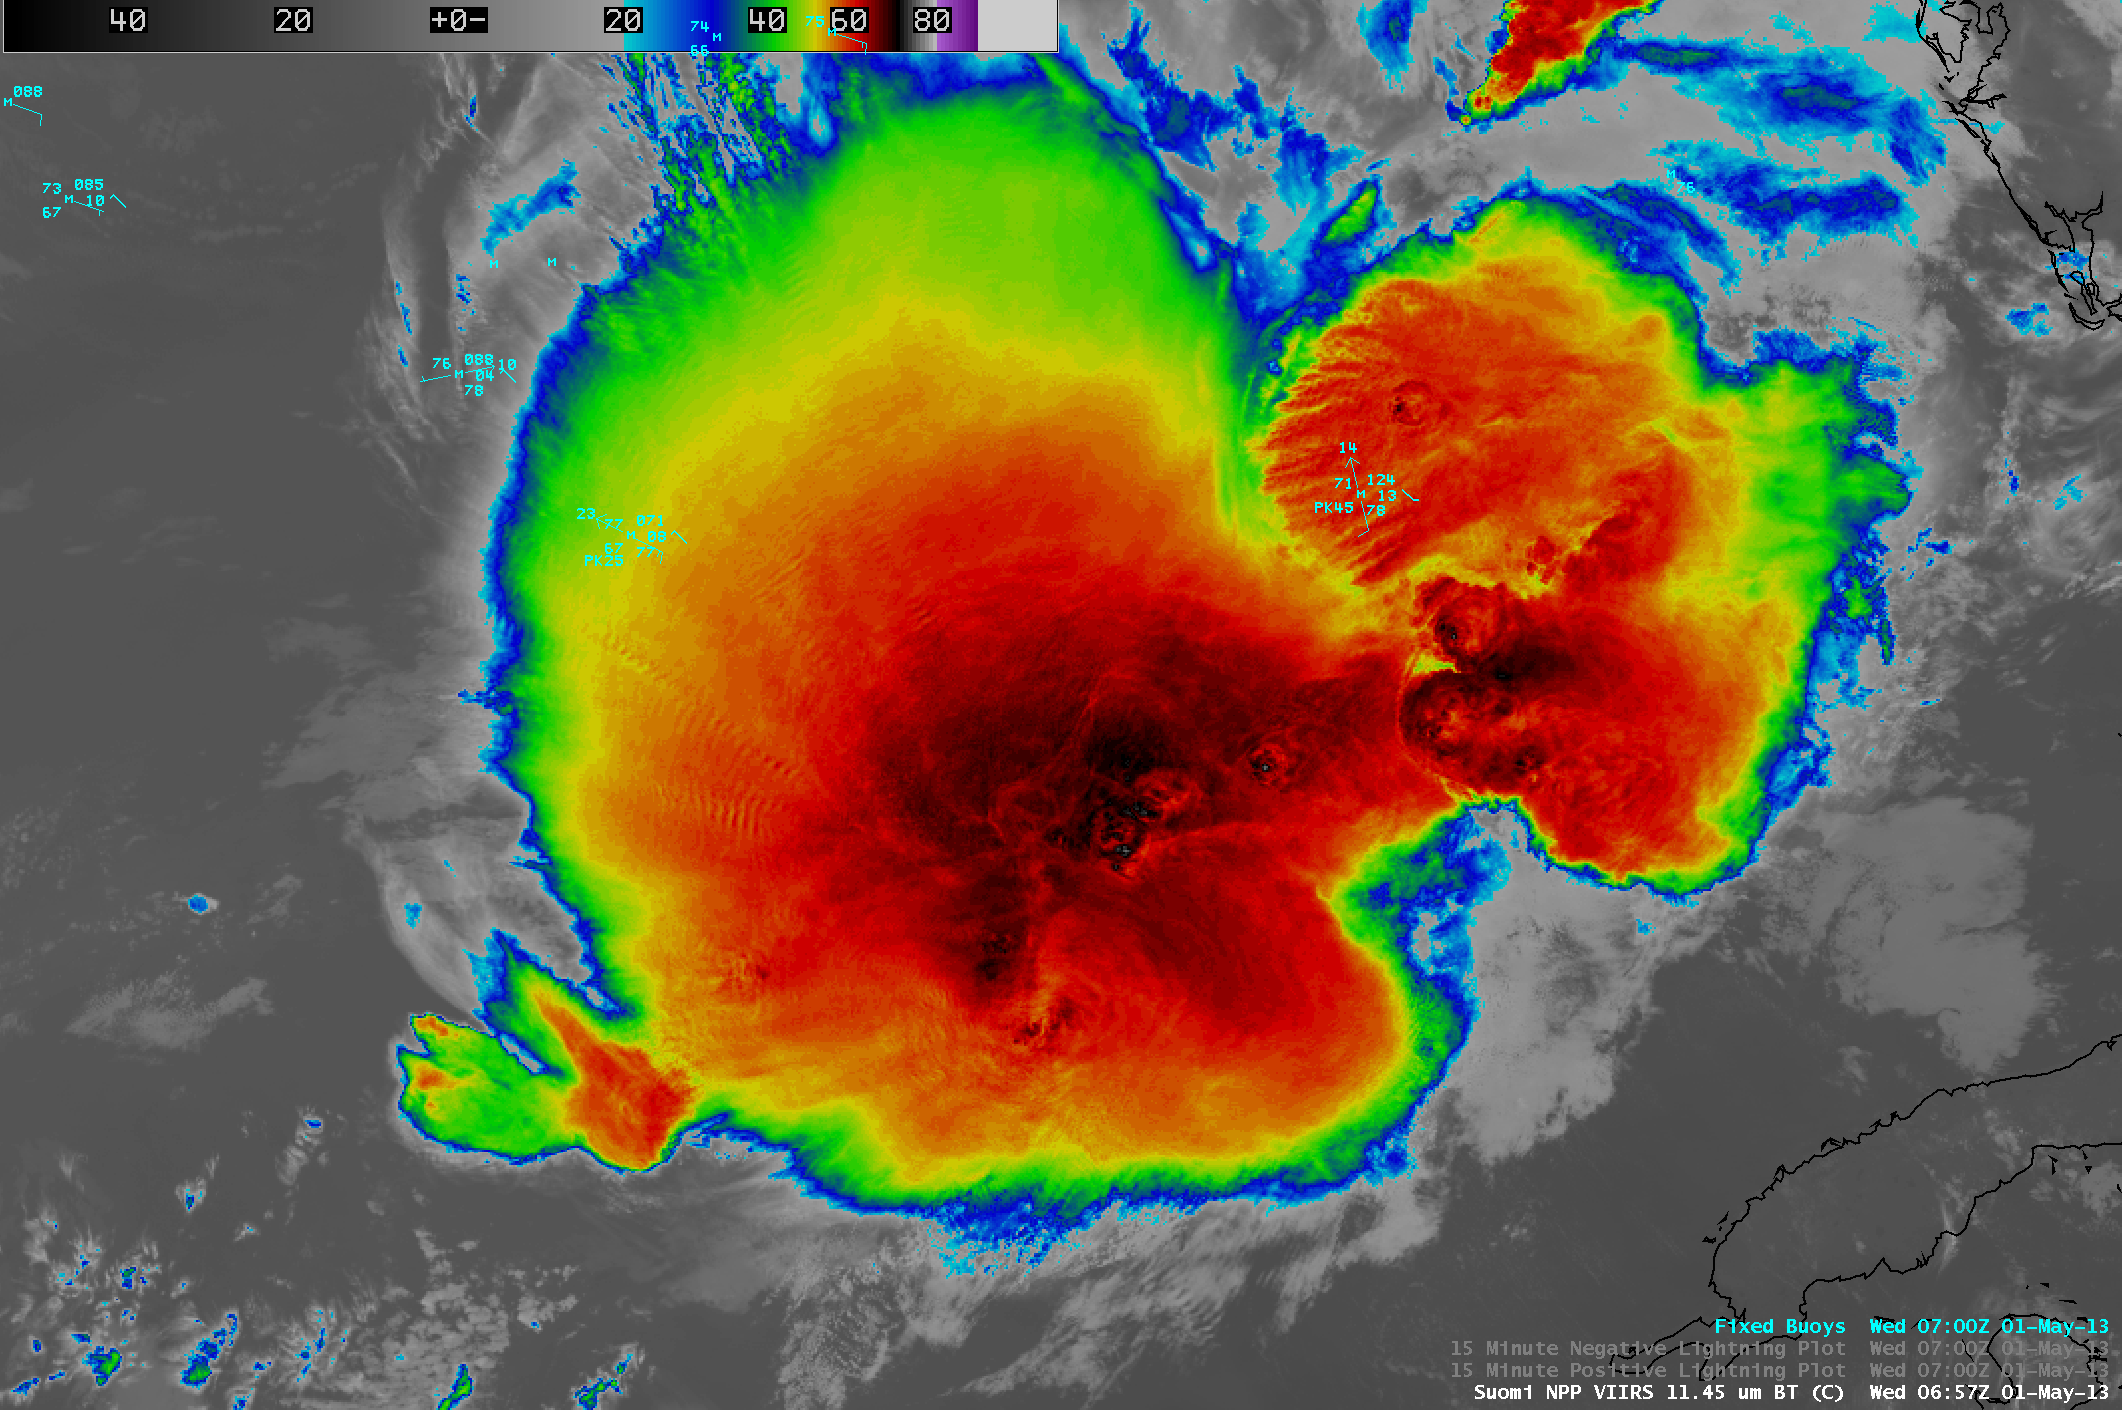 Suomi NPP VIIRS 11.45 µm IR channel image with surface buoy reports